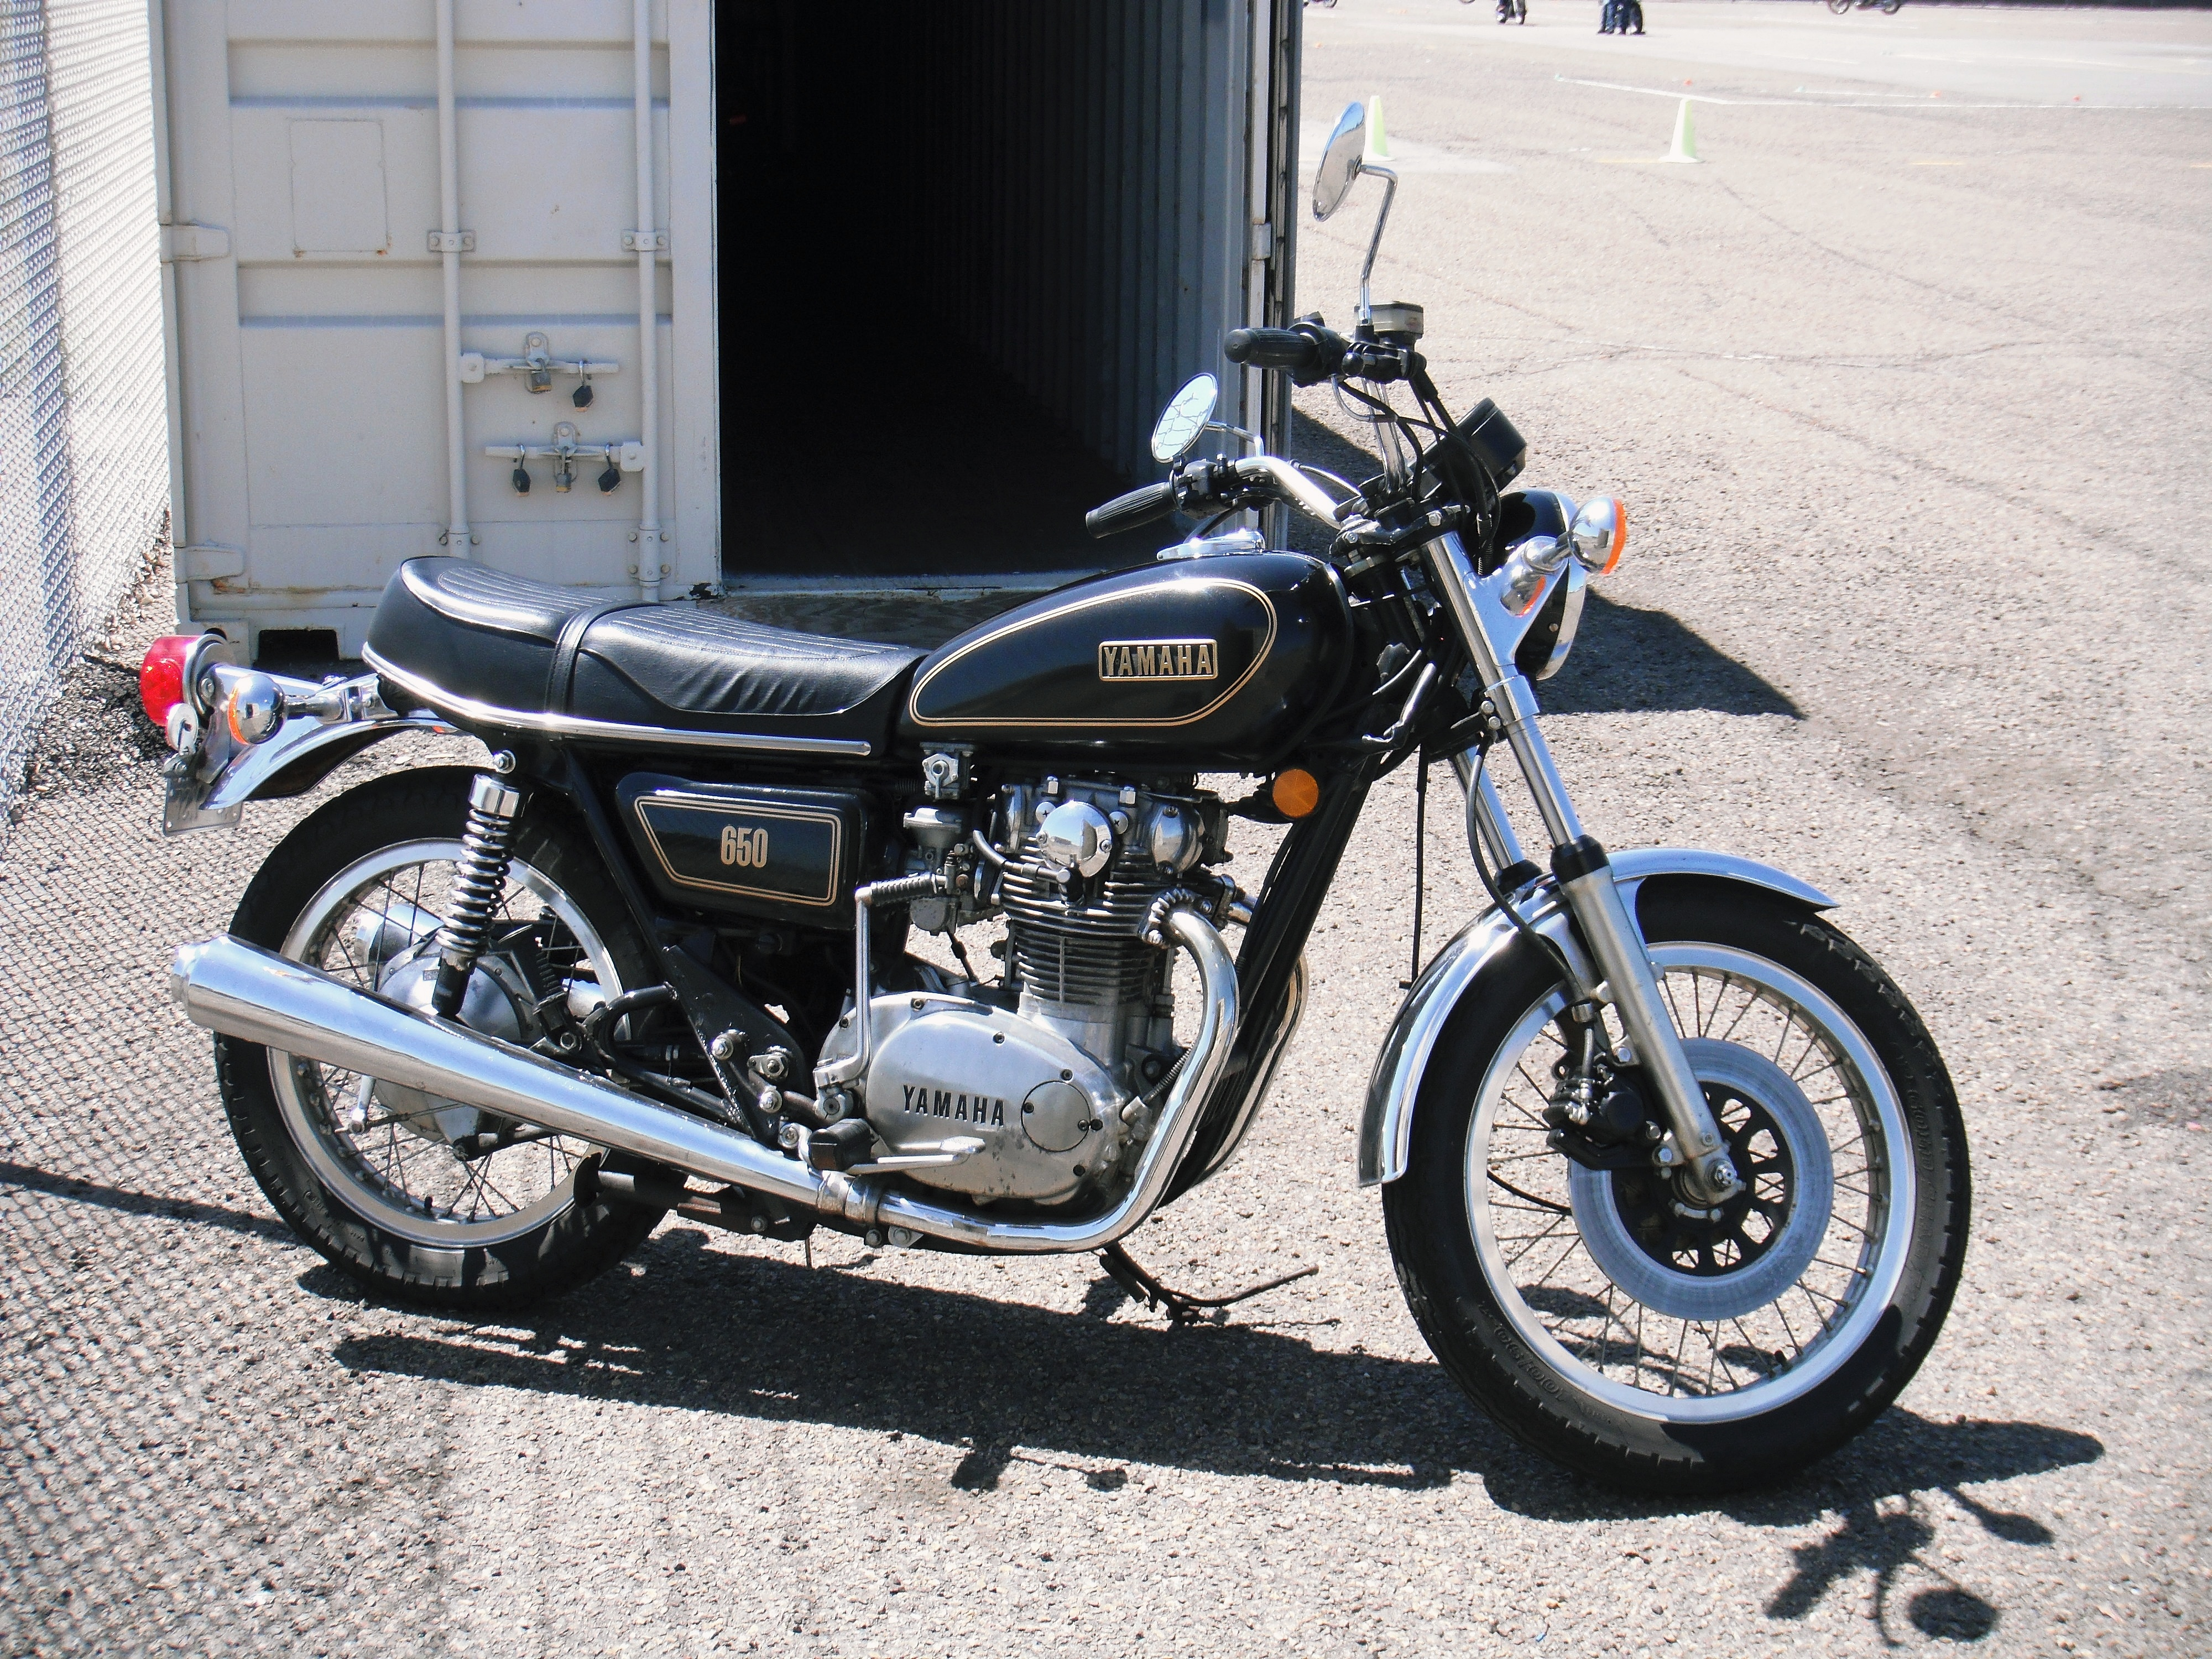 1978 Ymaha 650 Motorcycles Pictures to Pin on Pinterest ...